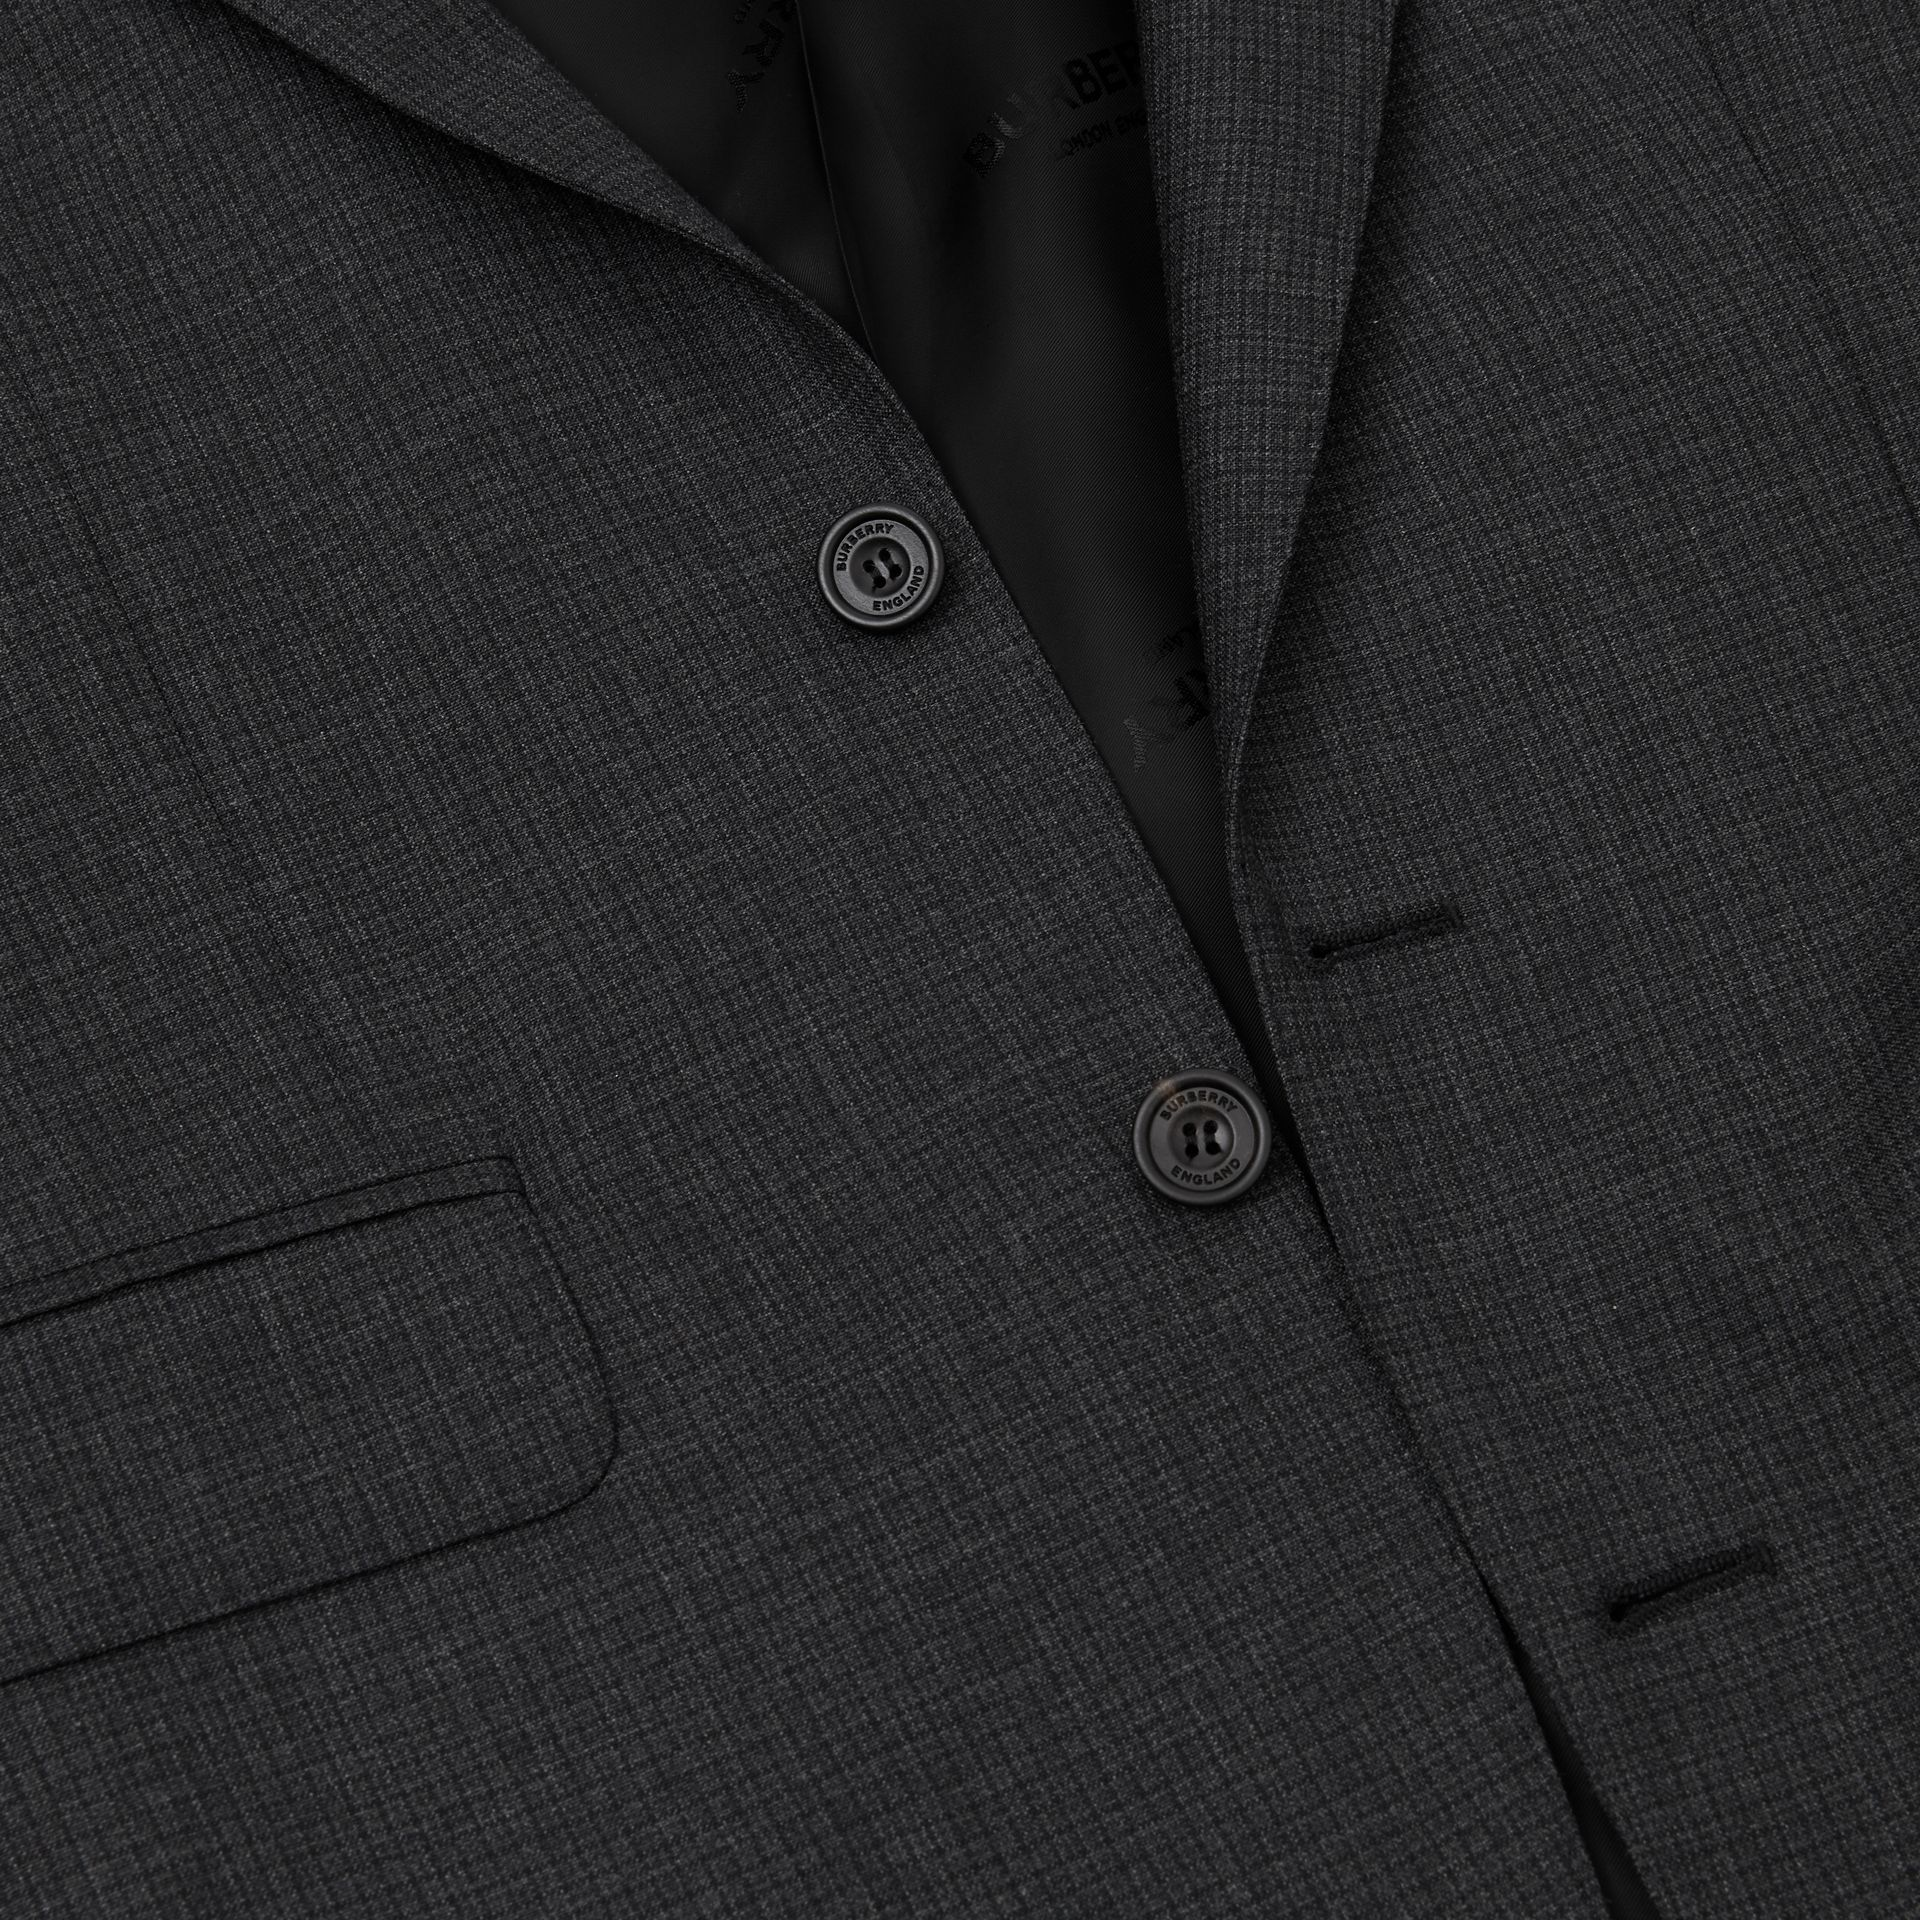 Classic Fit Windowpane Check Wool Three-piece Suit in Charcoal - Men | Burberry - gallery image 9